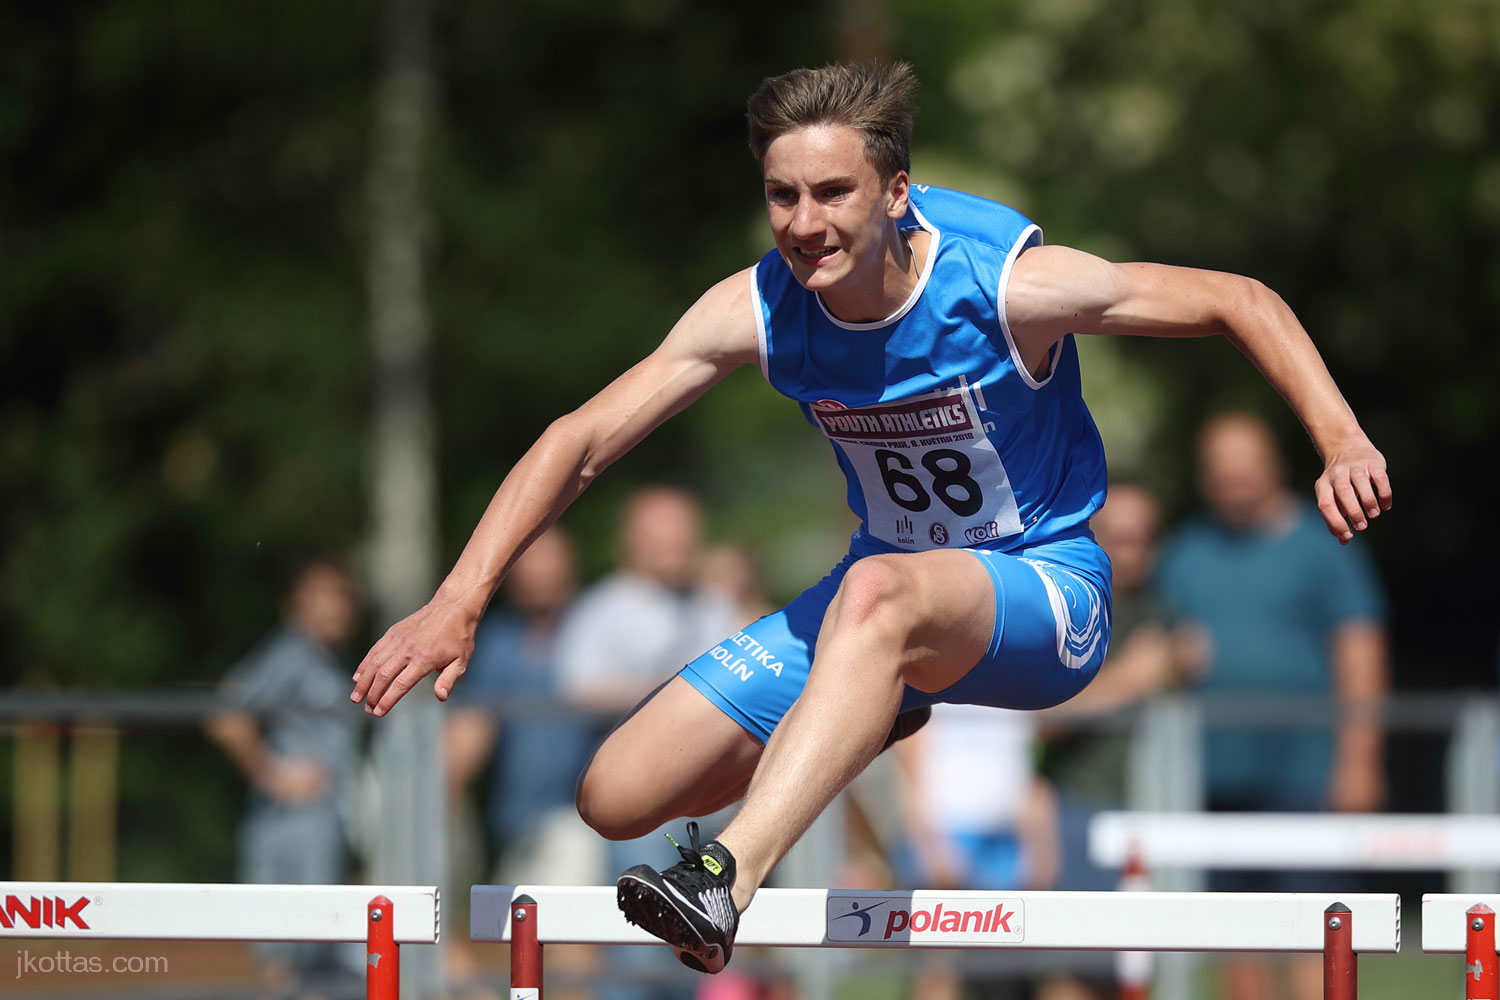 youth-athletics-kolin-08